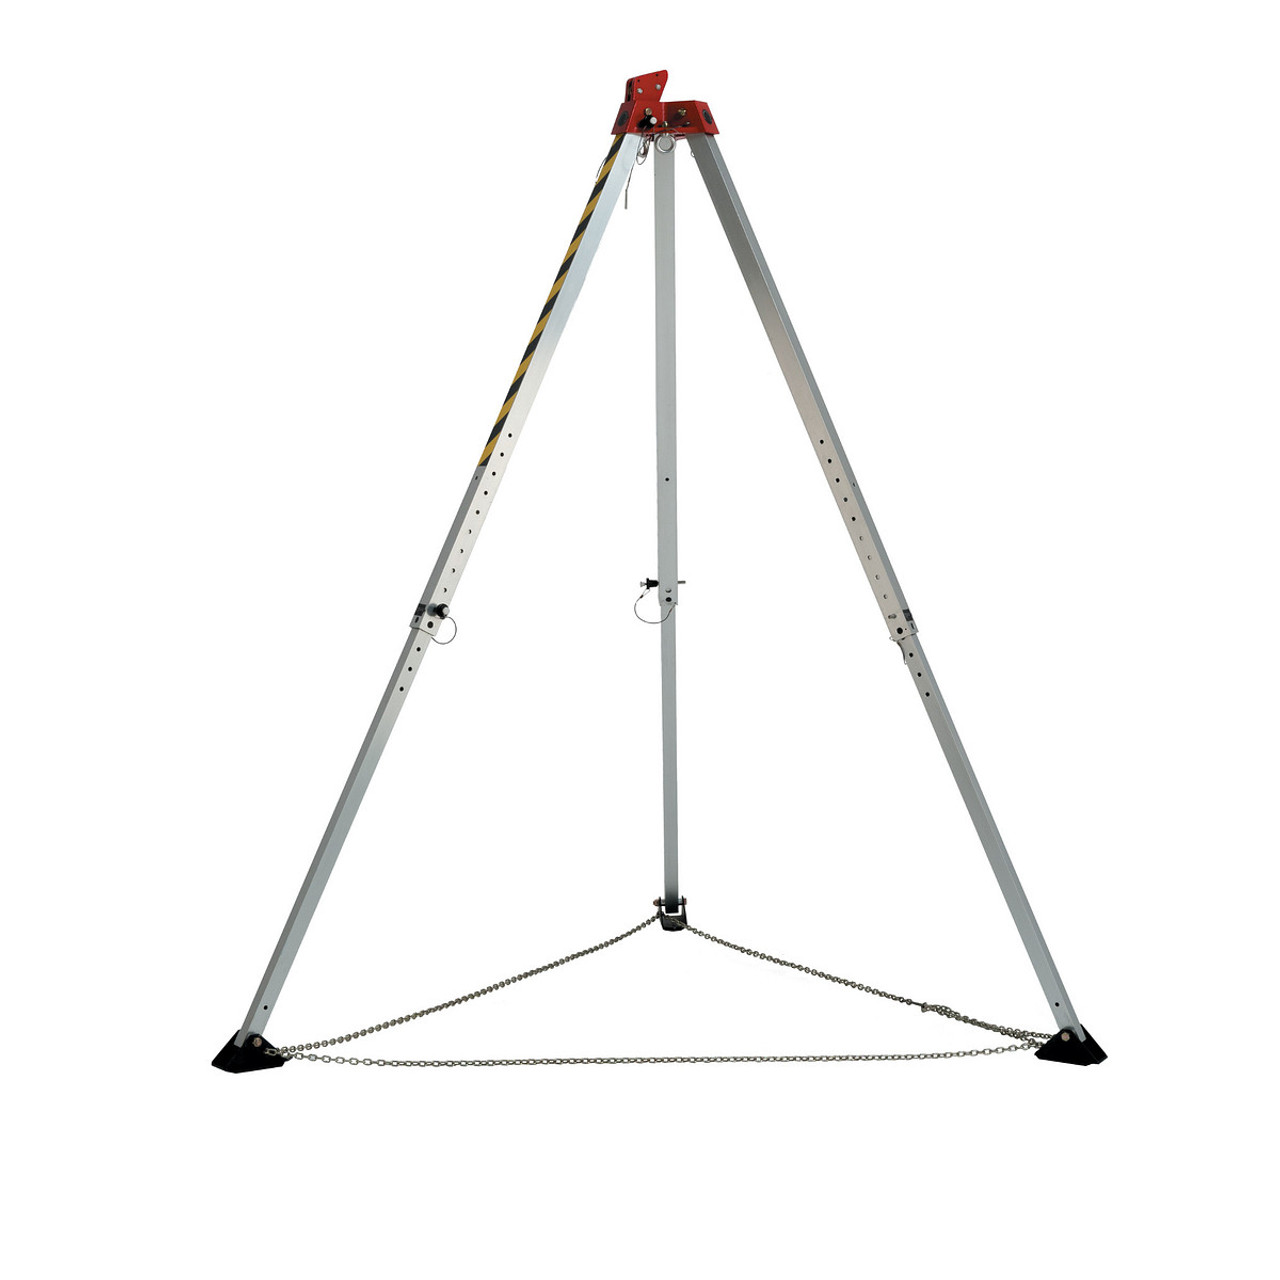 7' ALUMINUM TRIPOD ONLY